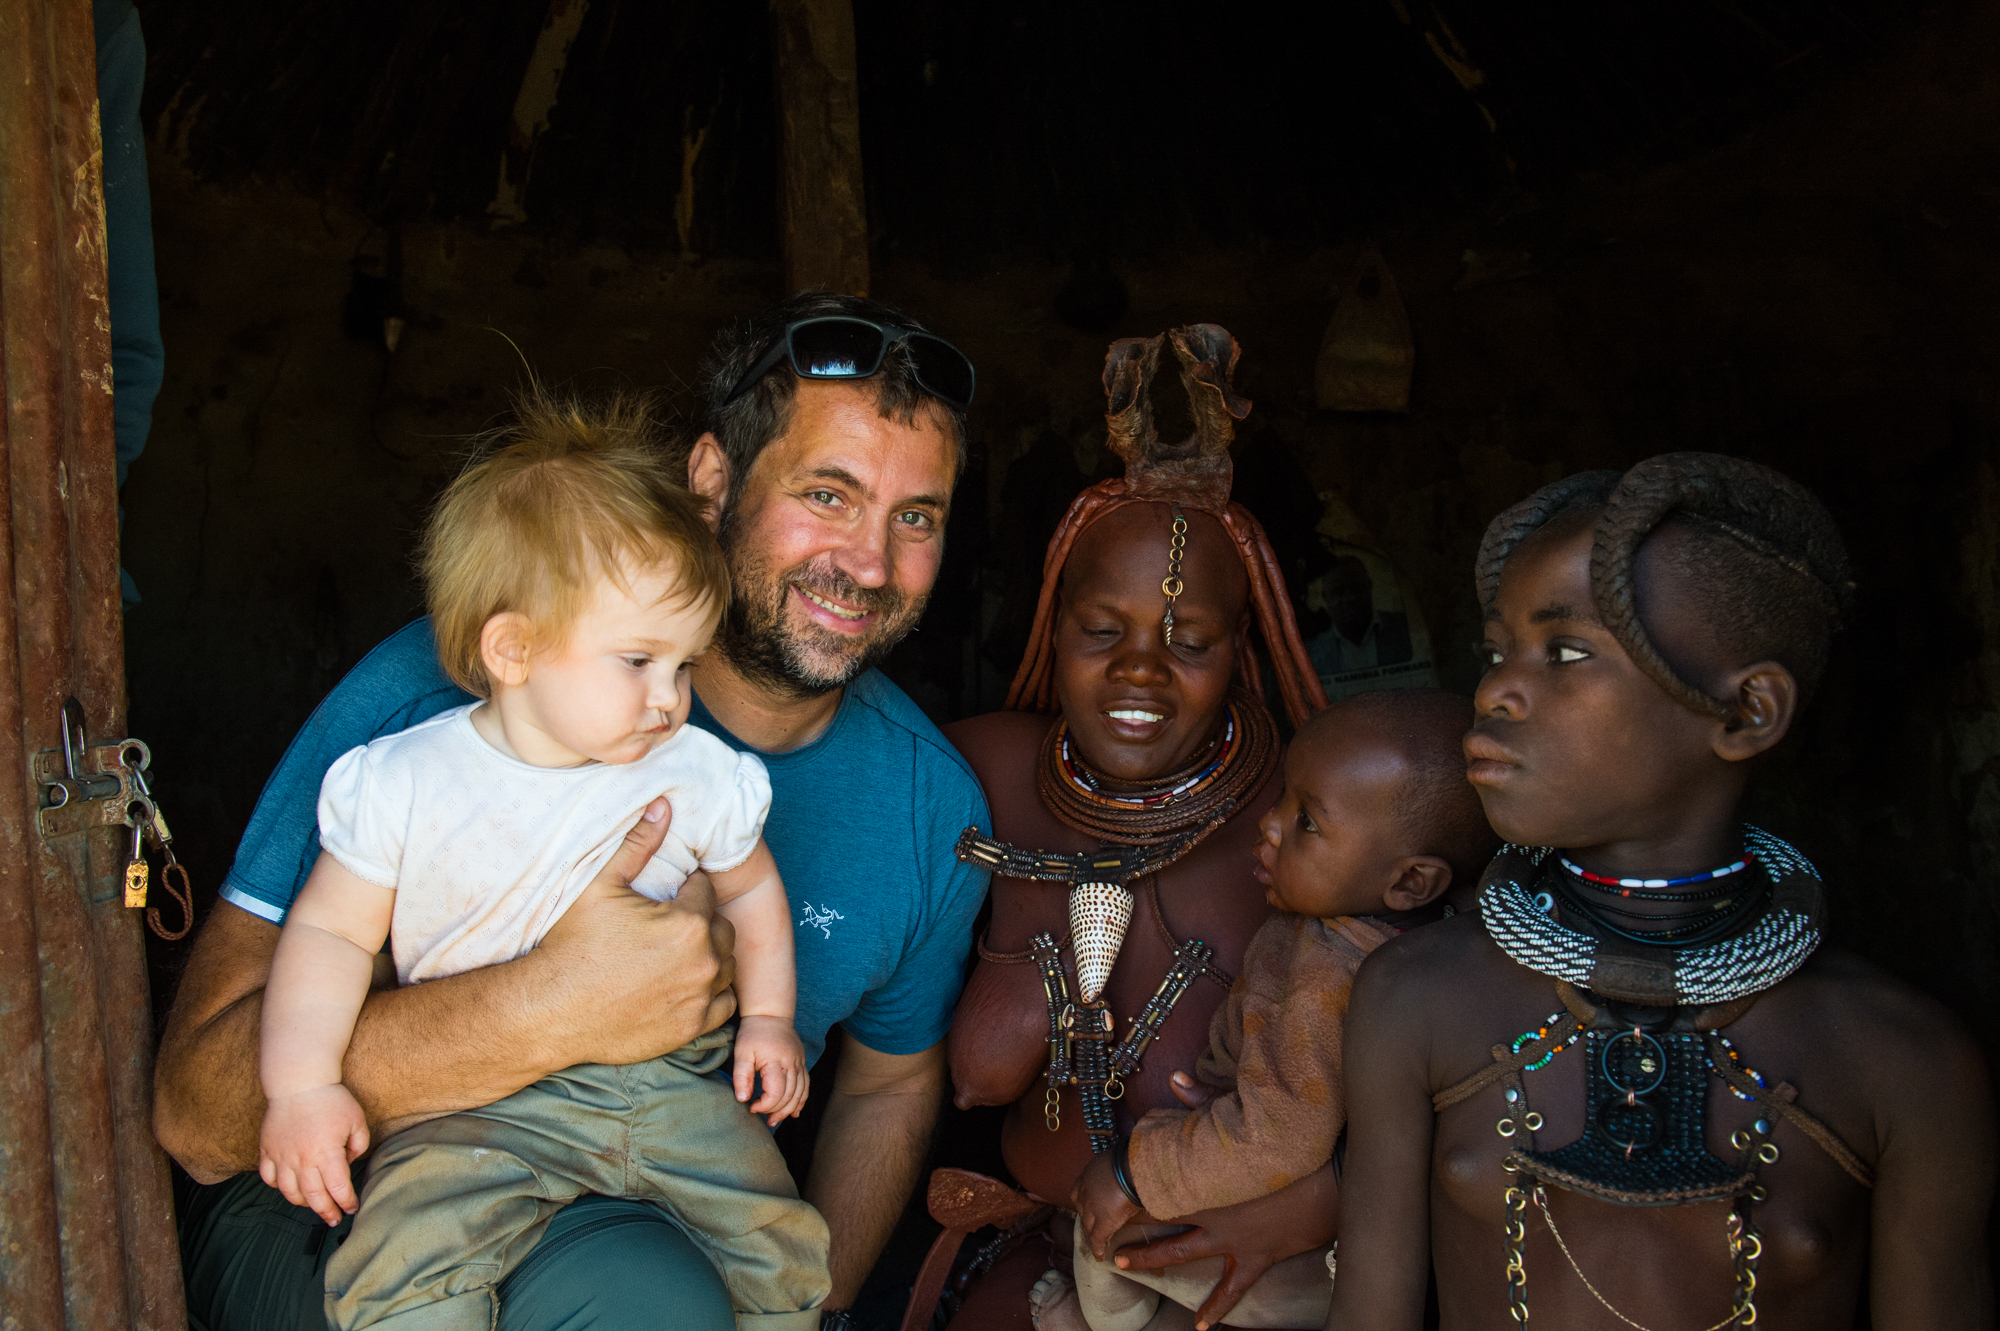 White tourist with his baby in a Himba village, Kaokoland, Namibia